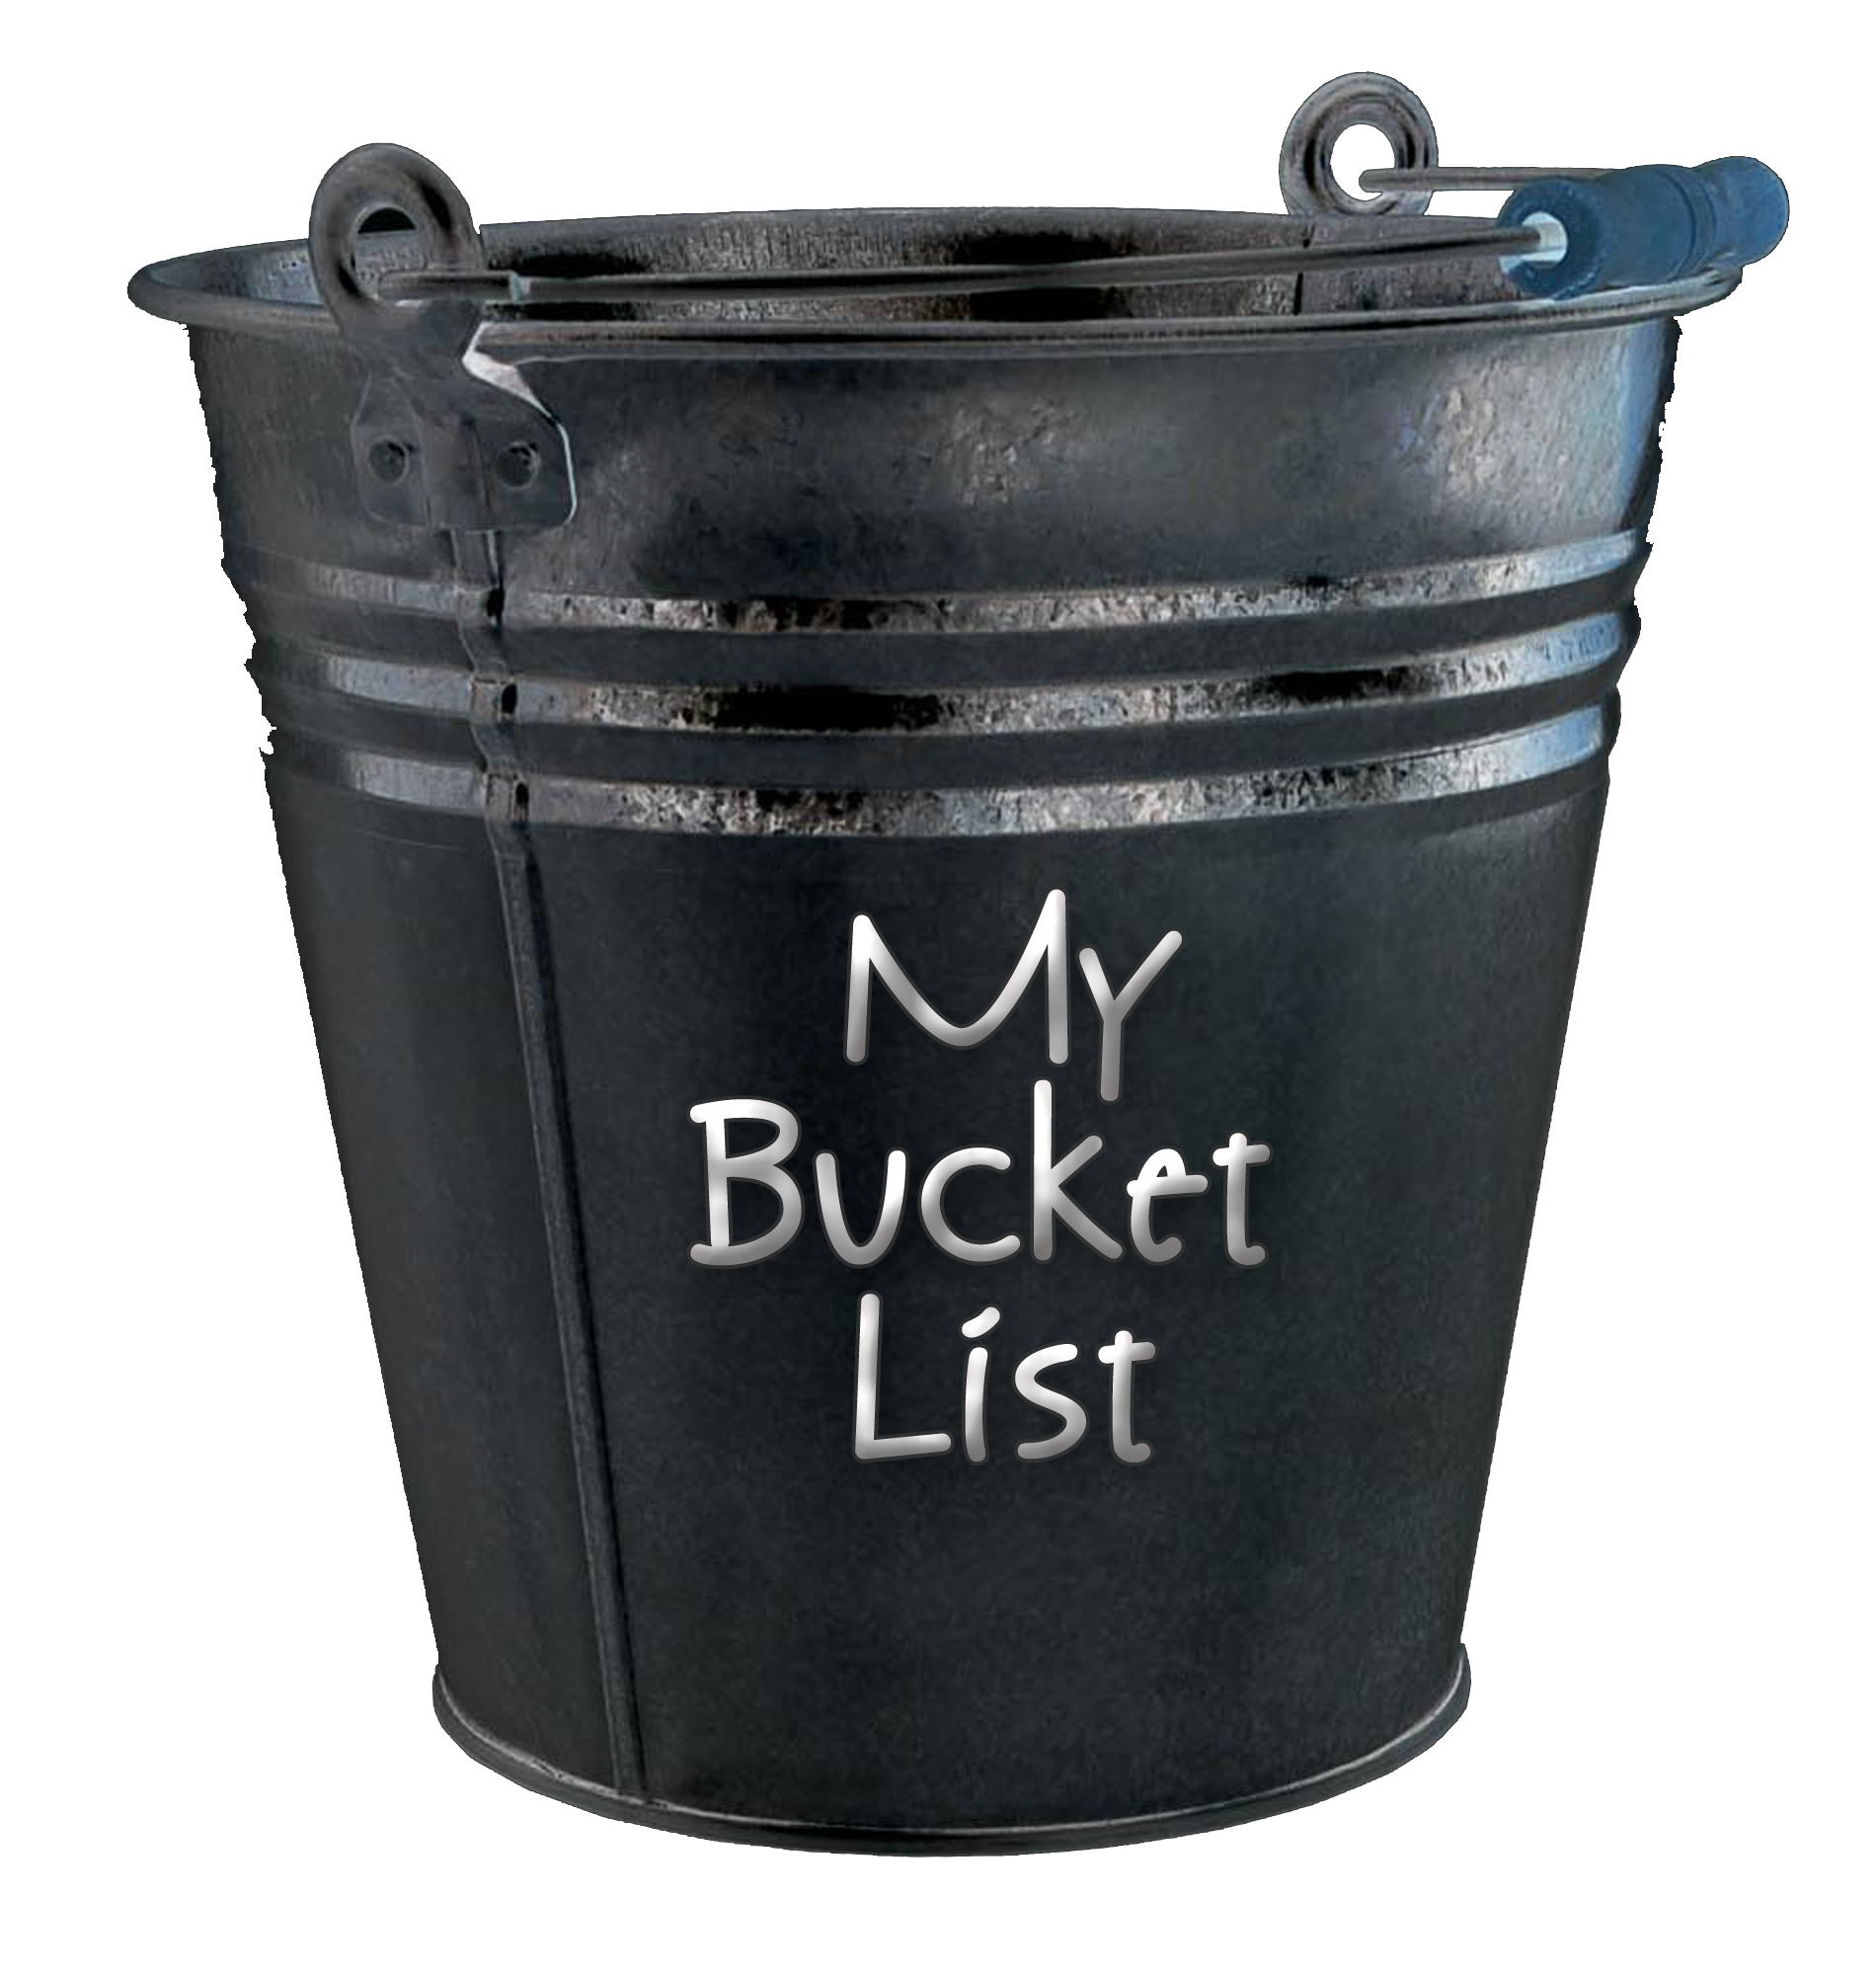 Bucket clipart kick the bucket. F ck lists awake